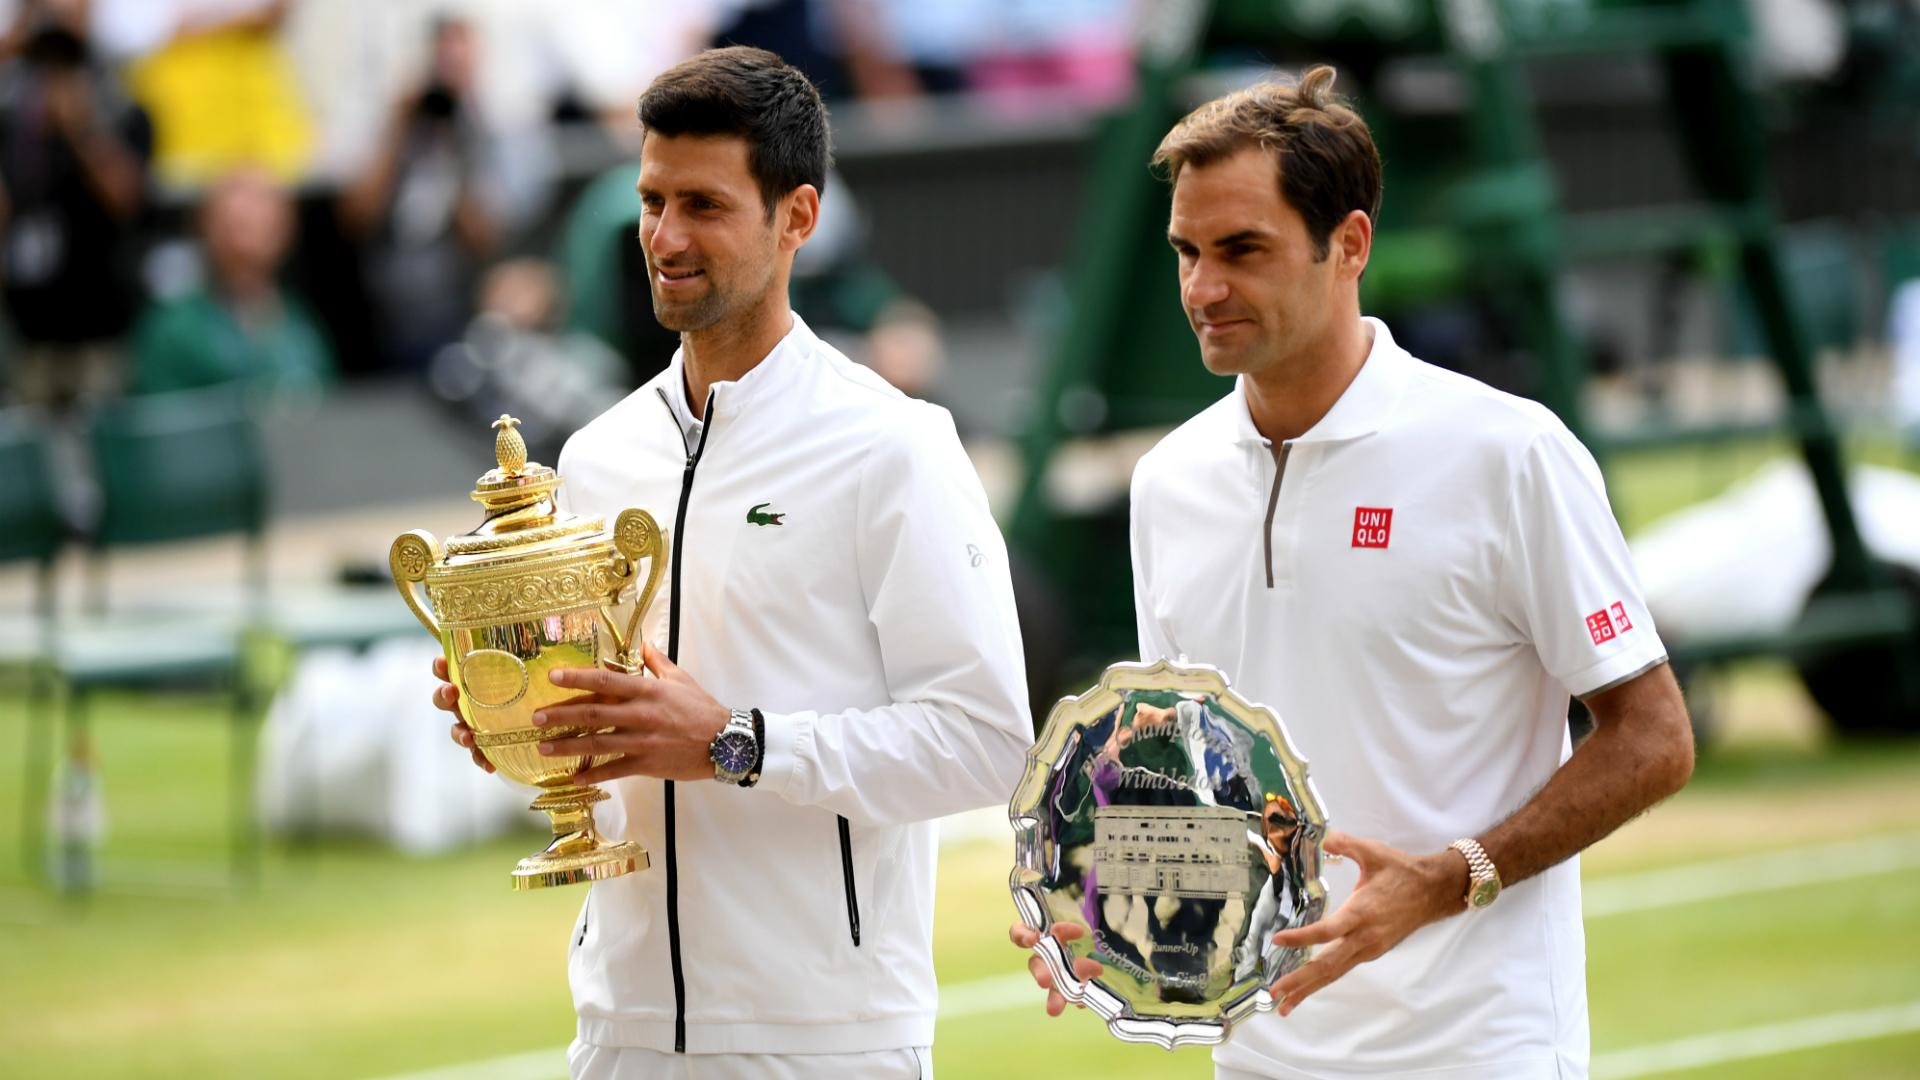 Djokovic S Father Says Federer Should Quit Tennis And Let Novak And Nadal Rule The Roost